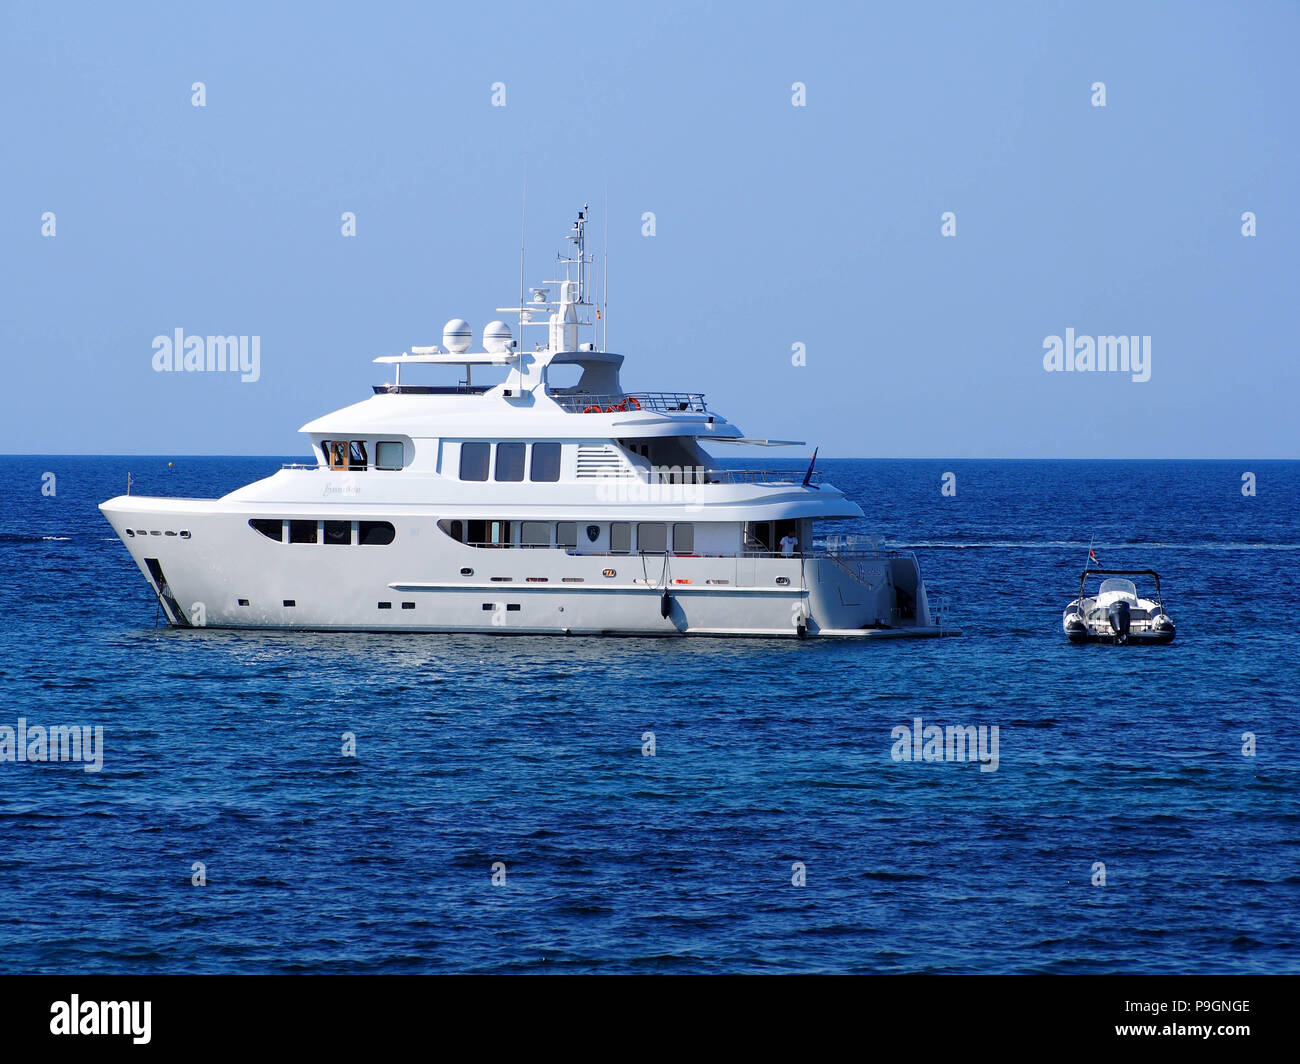 Yacht Badezimmer Cruiser Super Yacht Stock Photos Cruiser Super Yacht Stock